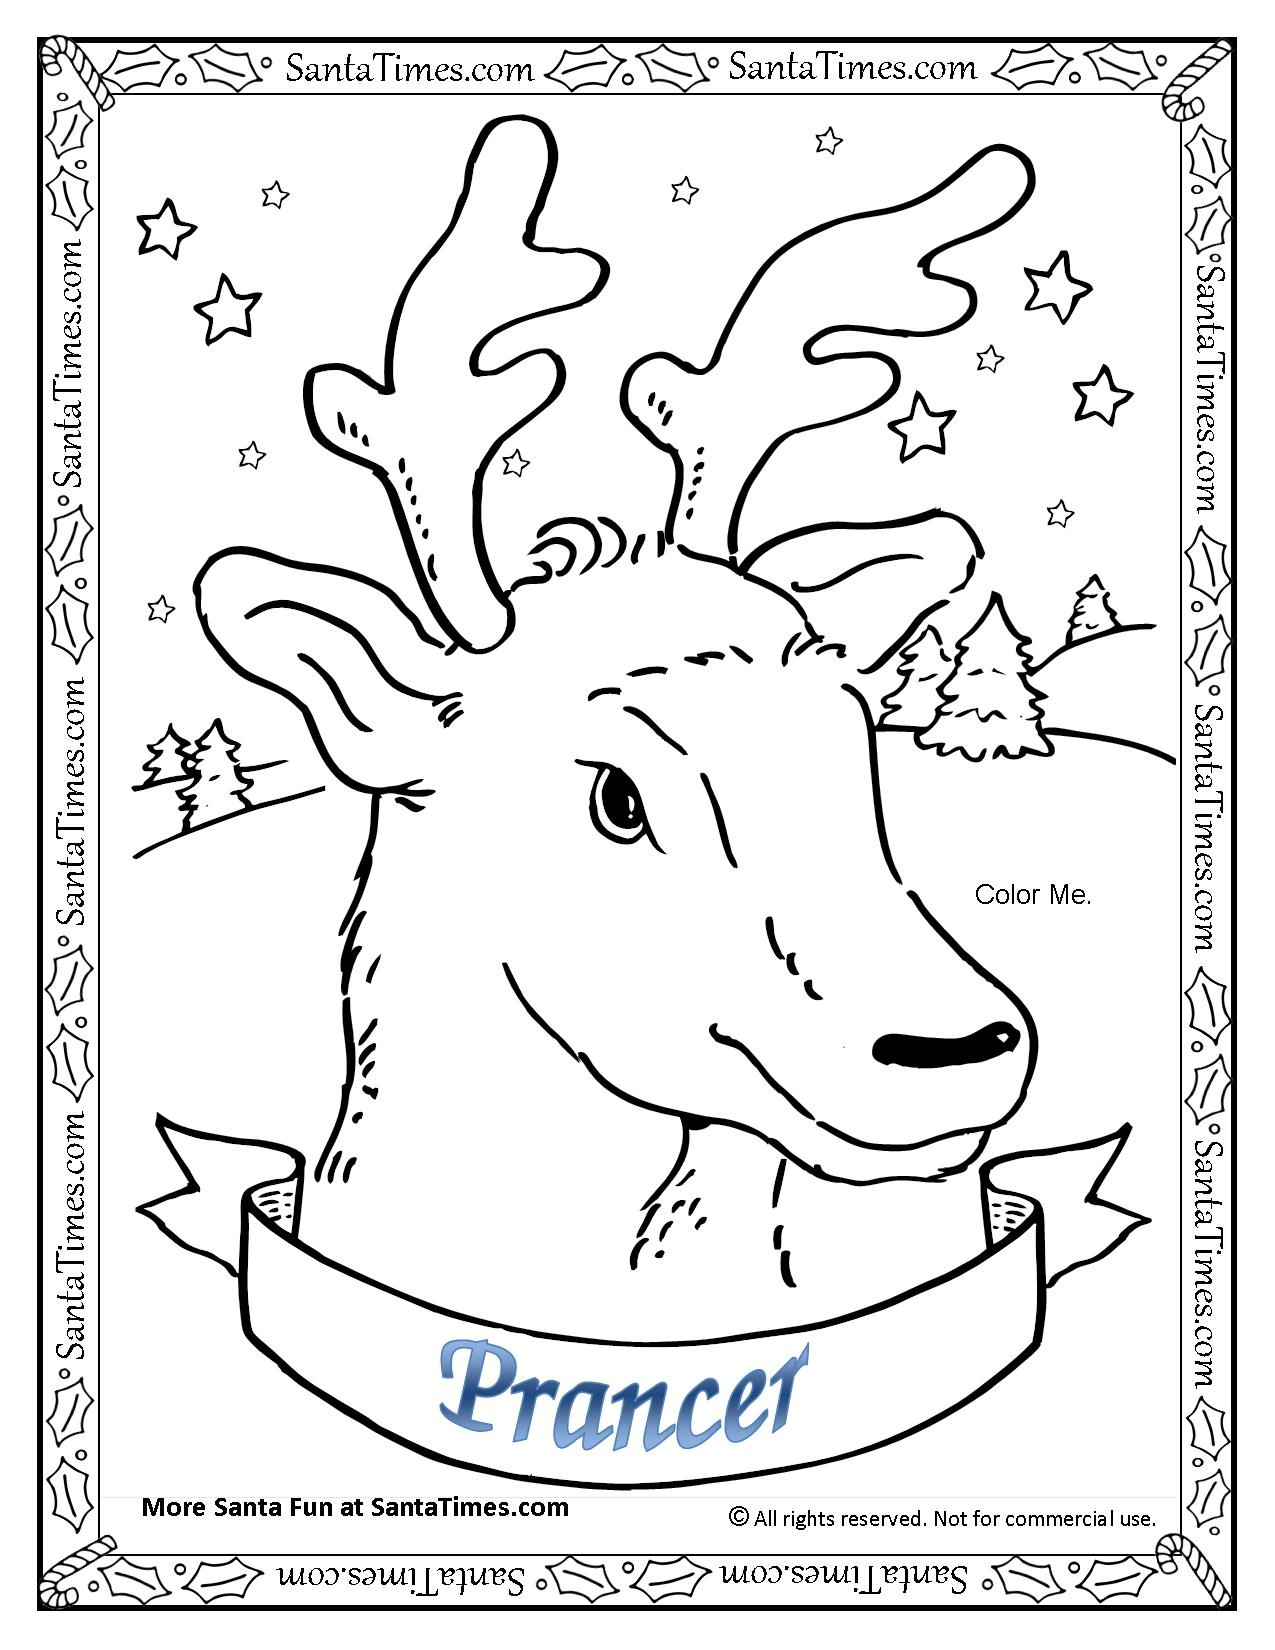 Prancer the reindeer for Santa with reindeer coloring pages